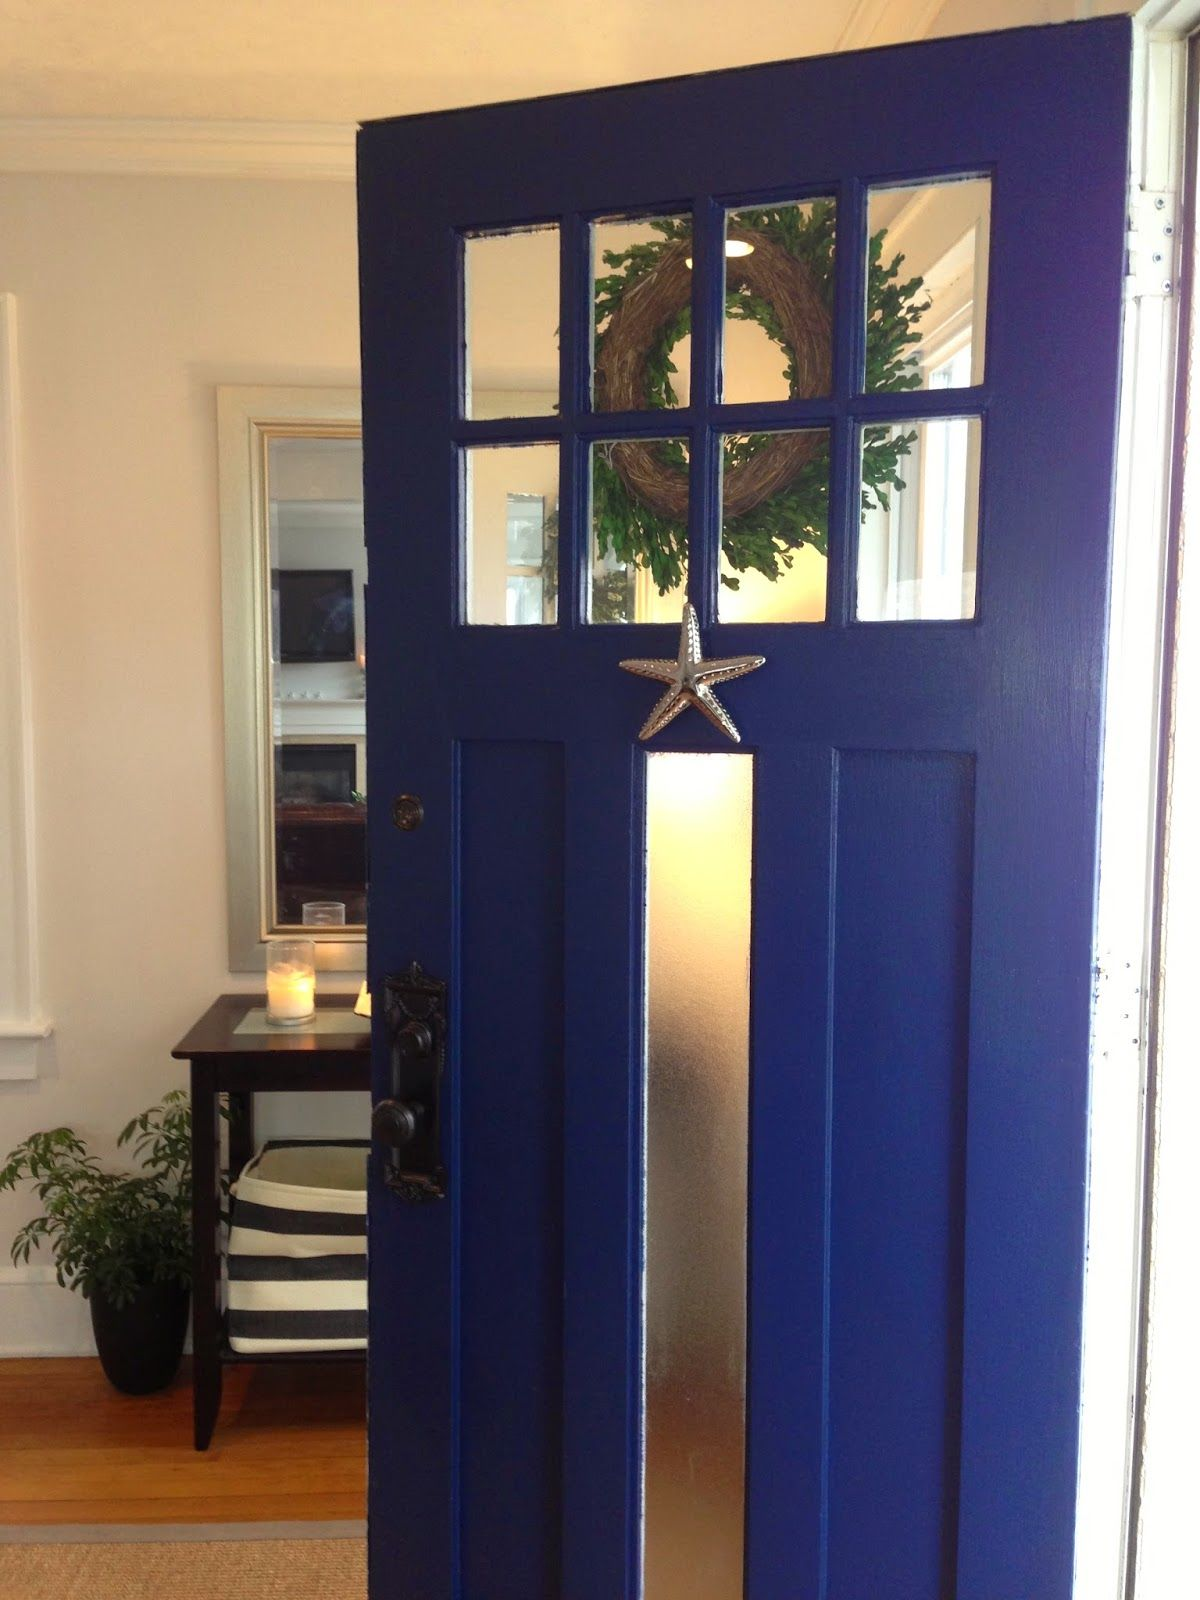 Marcie reid designs coastal front door paint color is old navy a coastal front door painted with sherwin wiliams old navy with a starfish door knocker from michael healy by marcie reid rubansaba